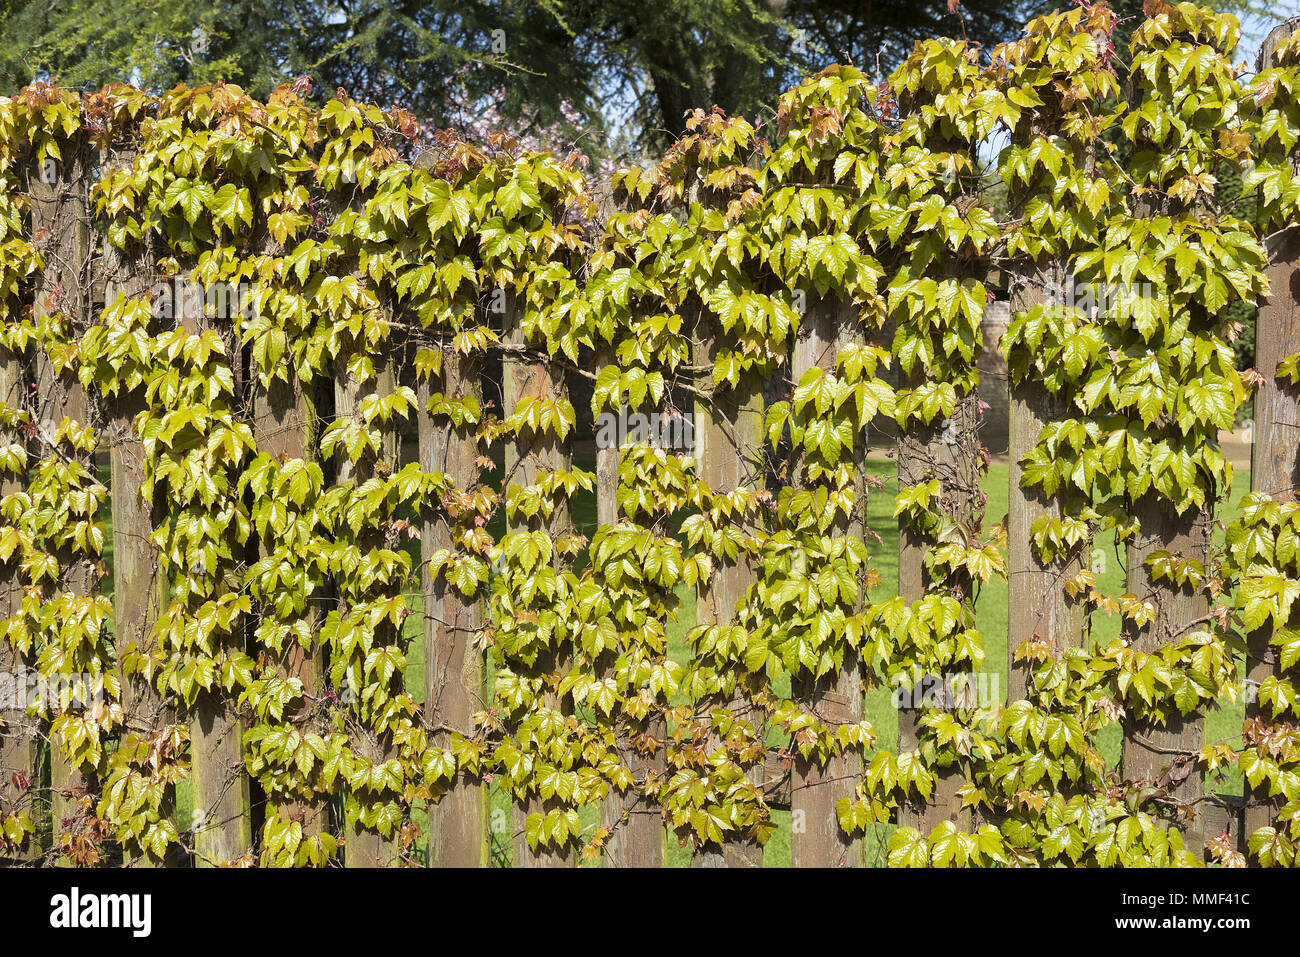 Creeper Fence Stockfotos & Creeper Fence Bilder - Seite 2 - Alamy